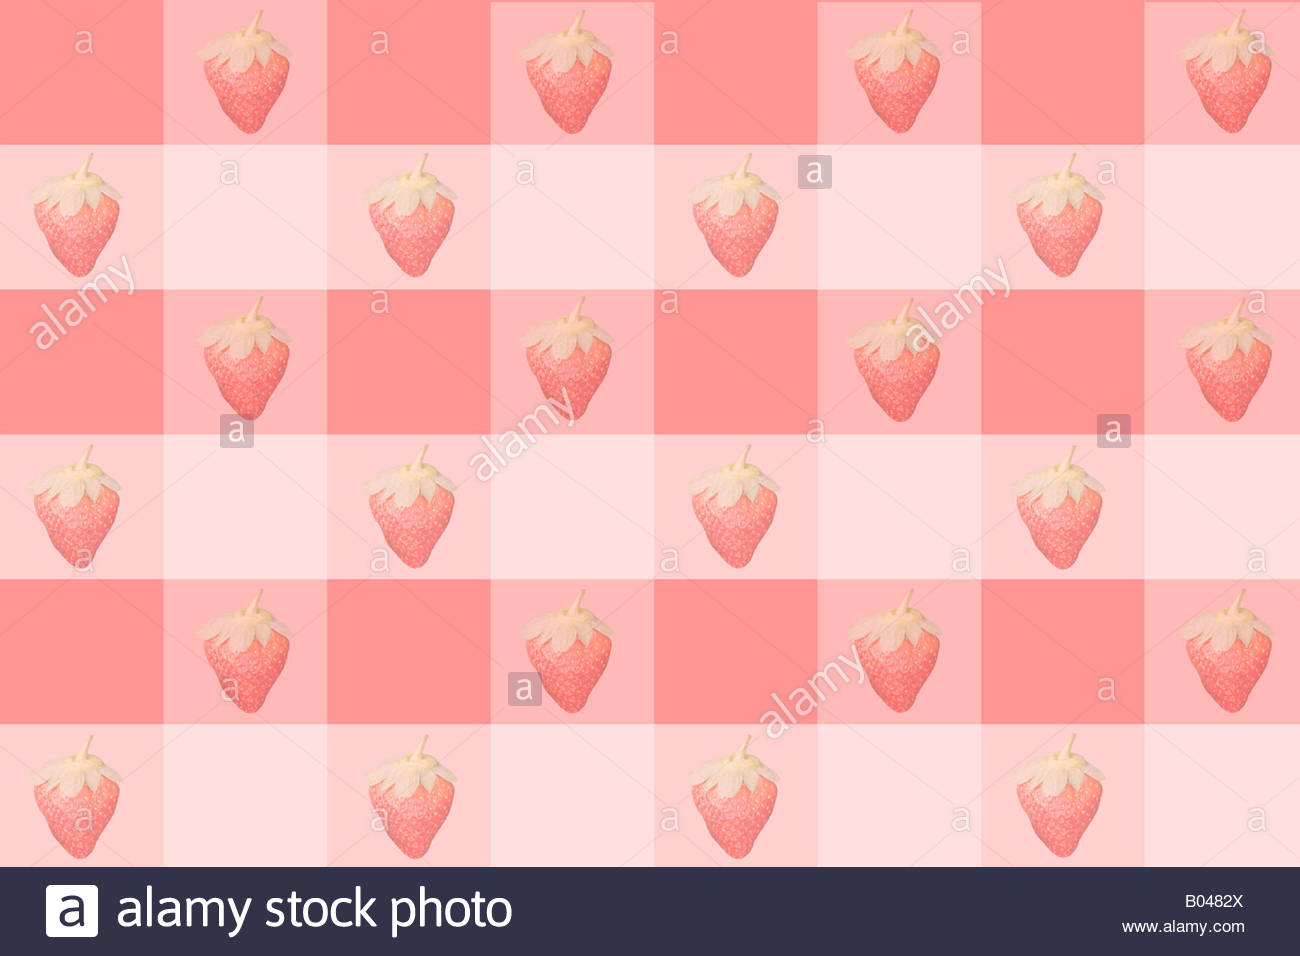 Strawberries on a checker pattern - Stock Image